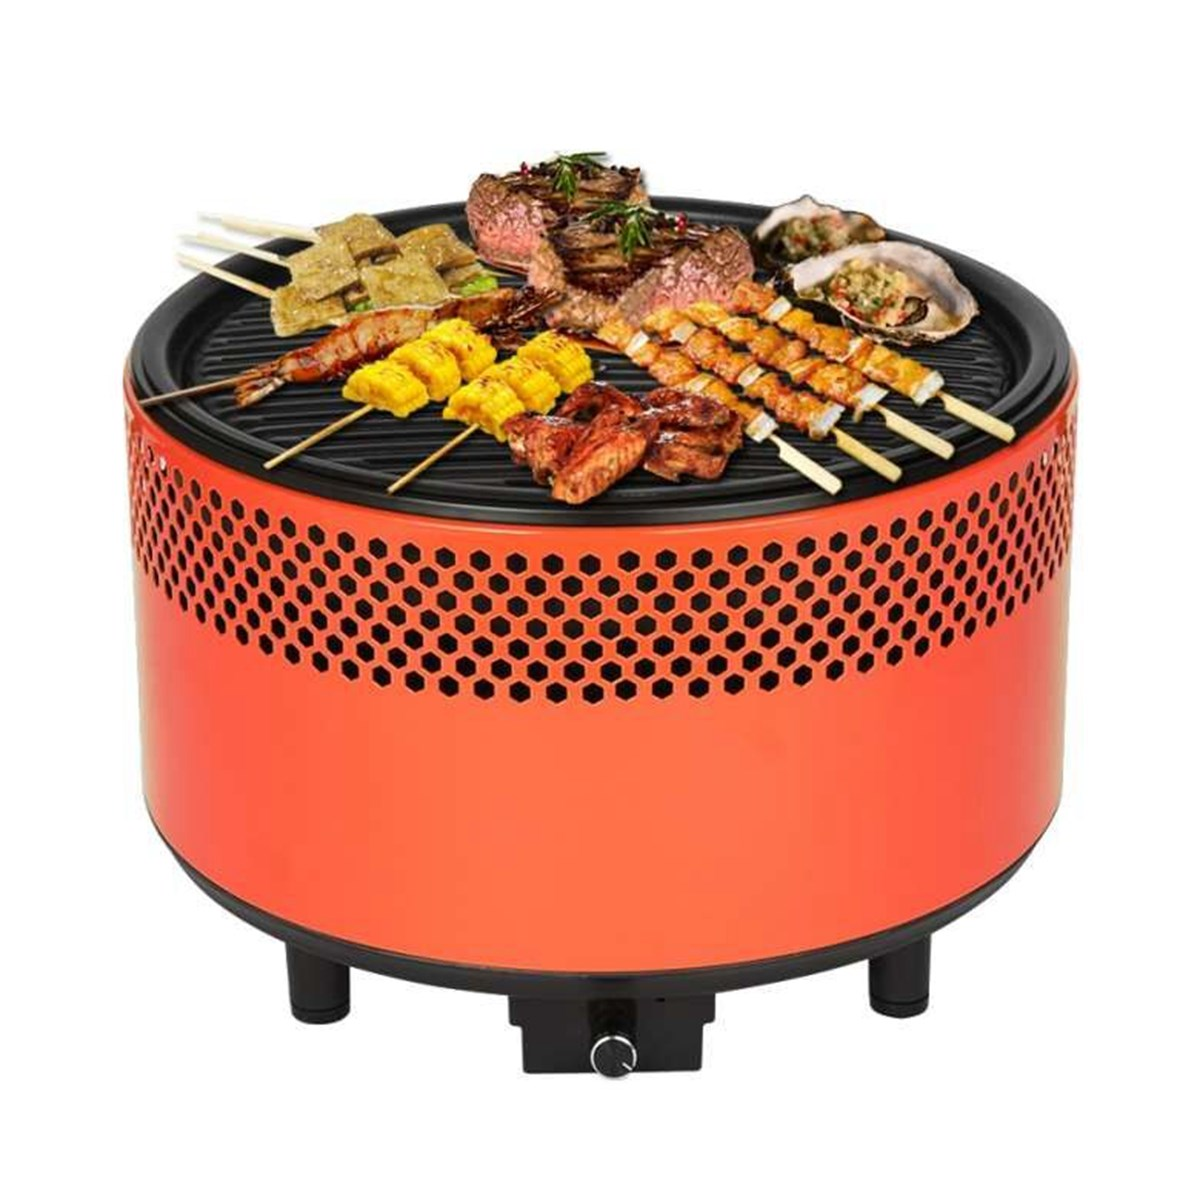 все цены на Portable Picnic BBQ Grill Oven Charcoal Round Barbecue Stove Roasting Tray Meat Cooker Outdoor Camping Hiking Cooking stove онлайн